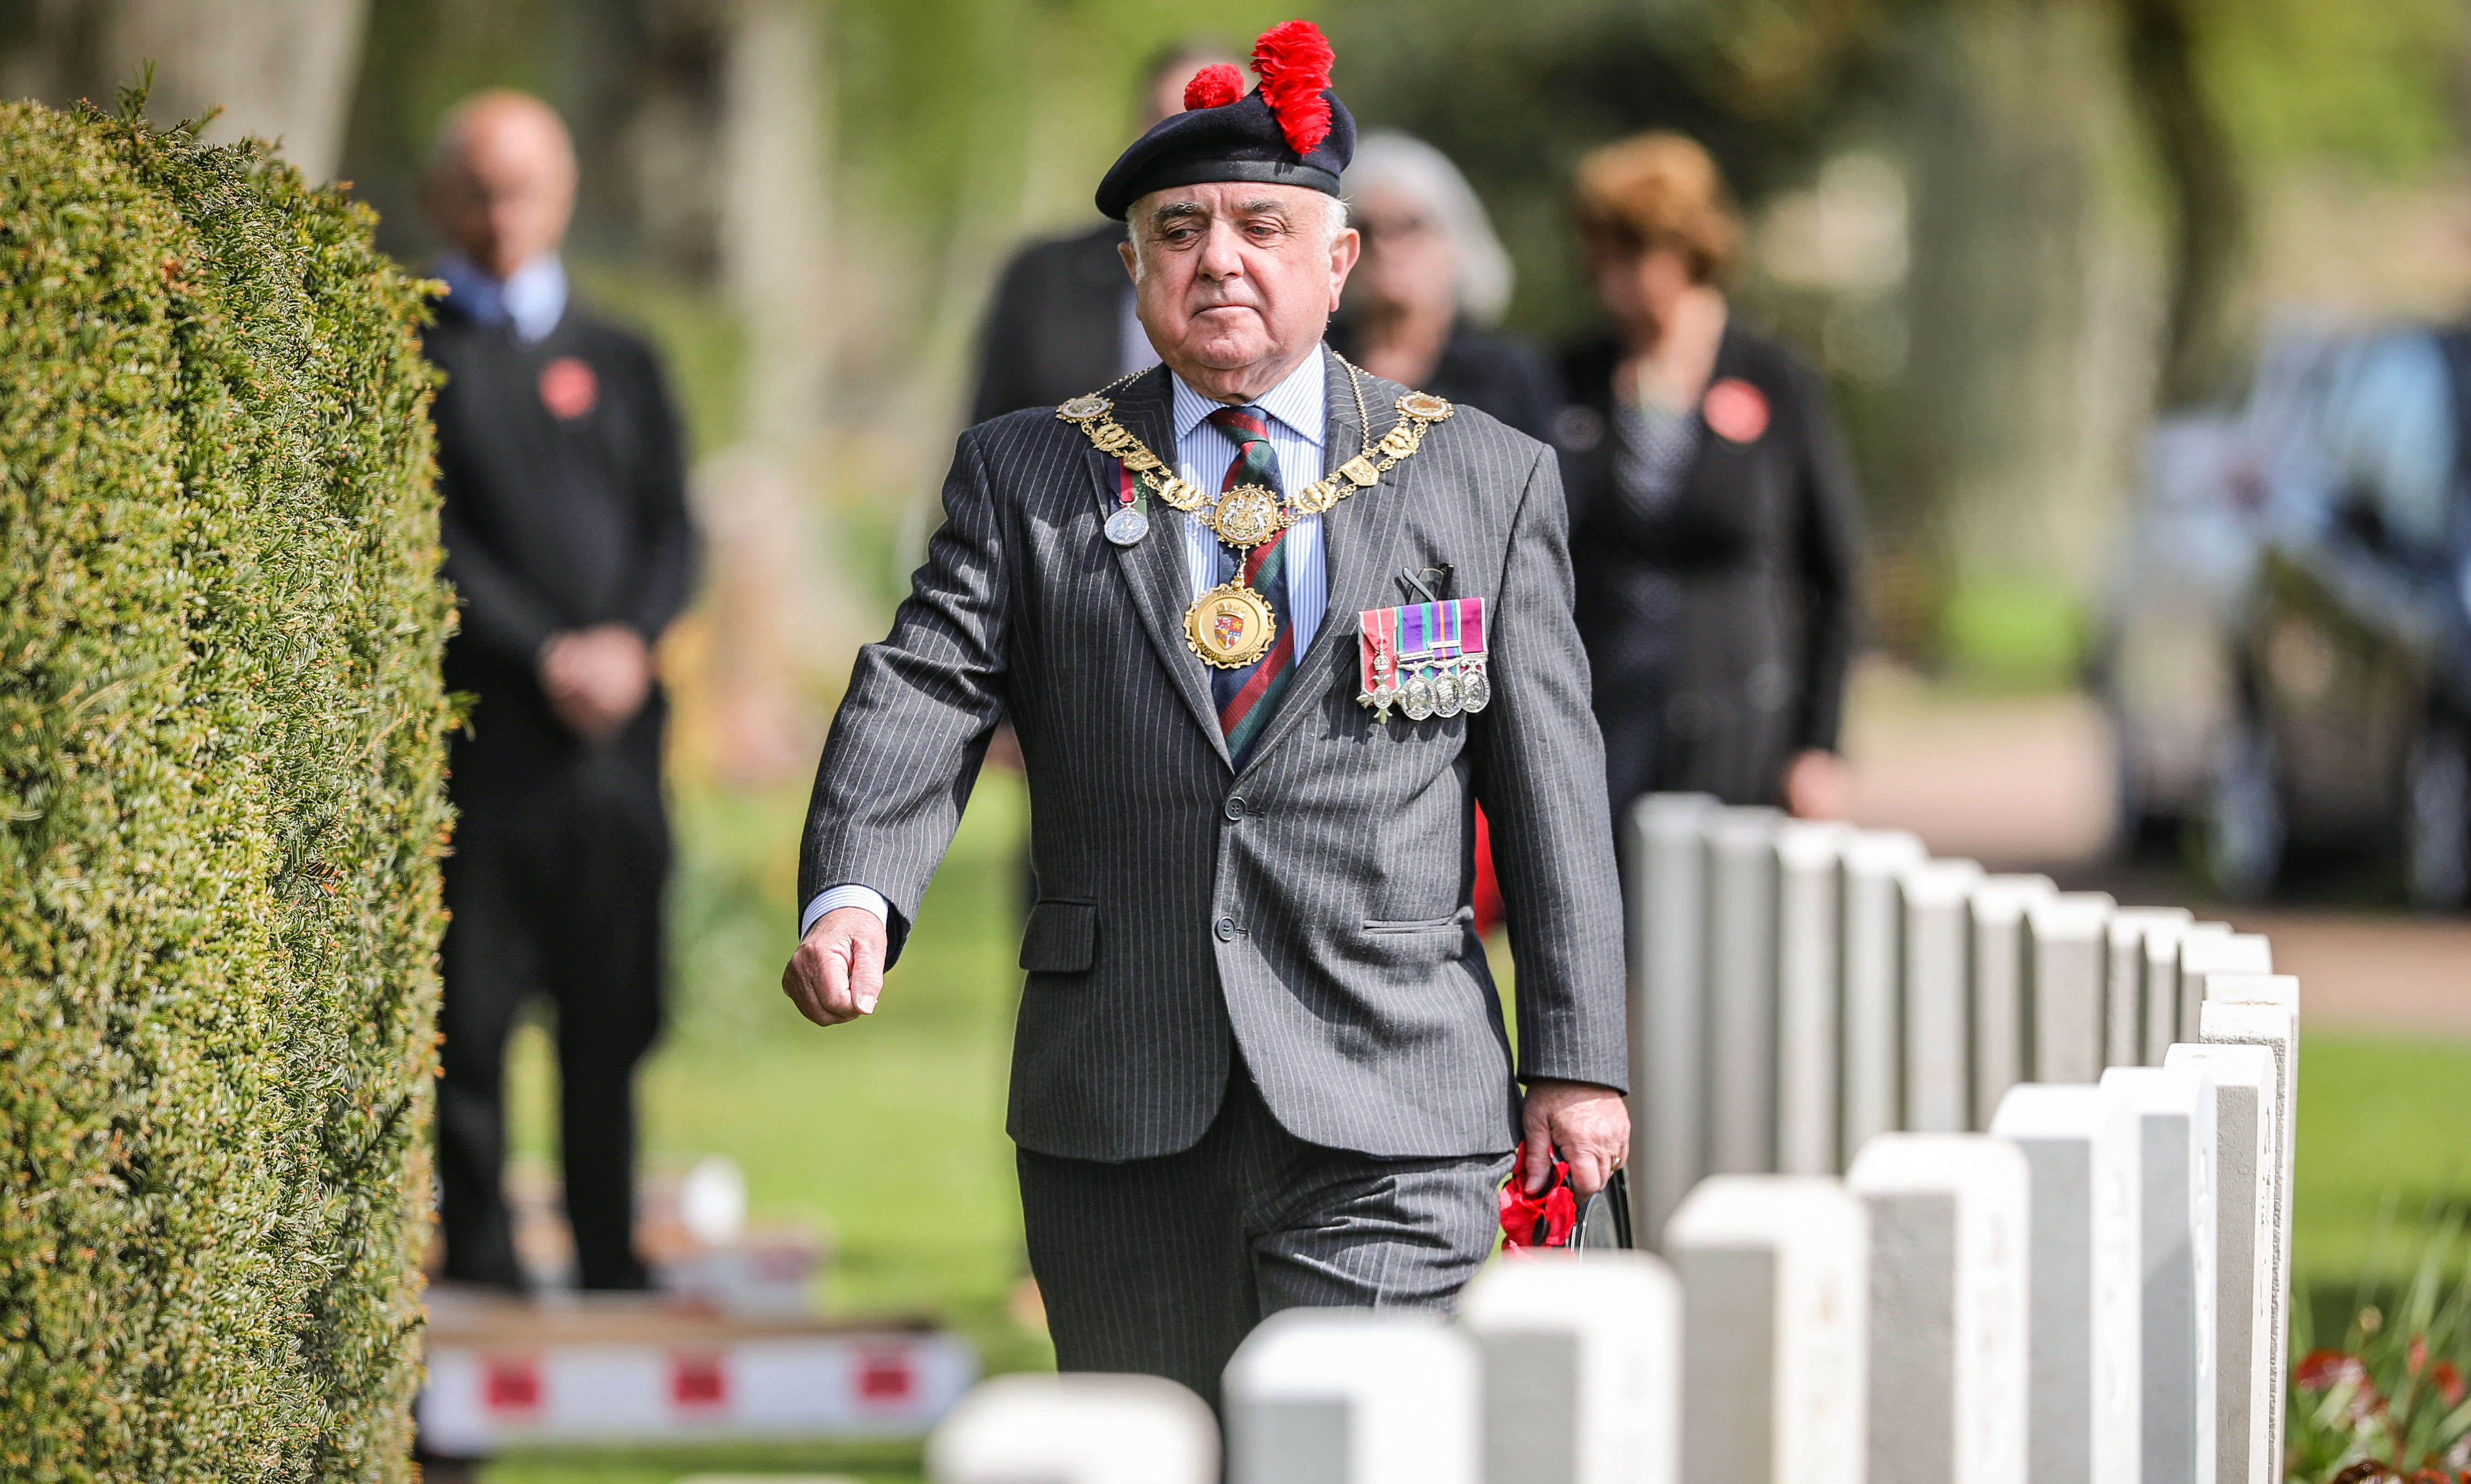 Major Ronnie Proctor, Provost of Angus, laying a wreath.